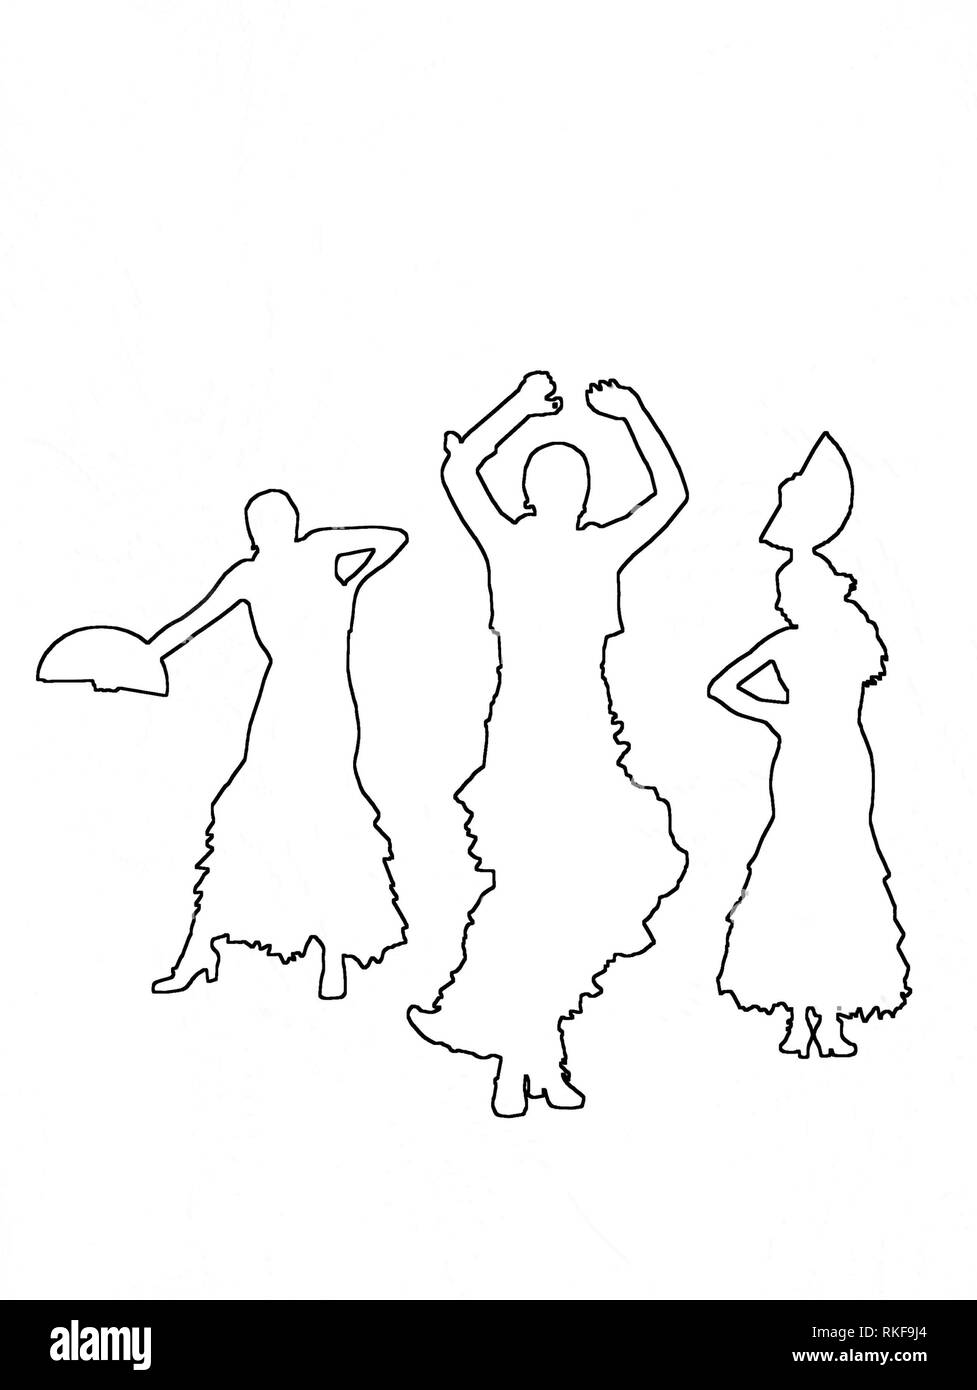 Silhouettes of three female flamenco dancers black contours on white abstract background illustration. - Stock Image